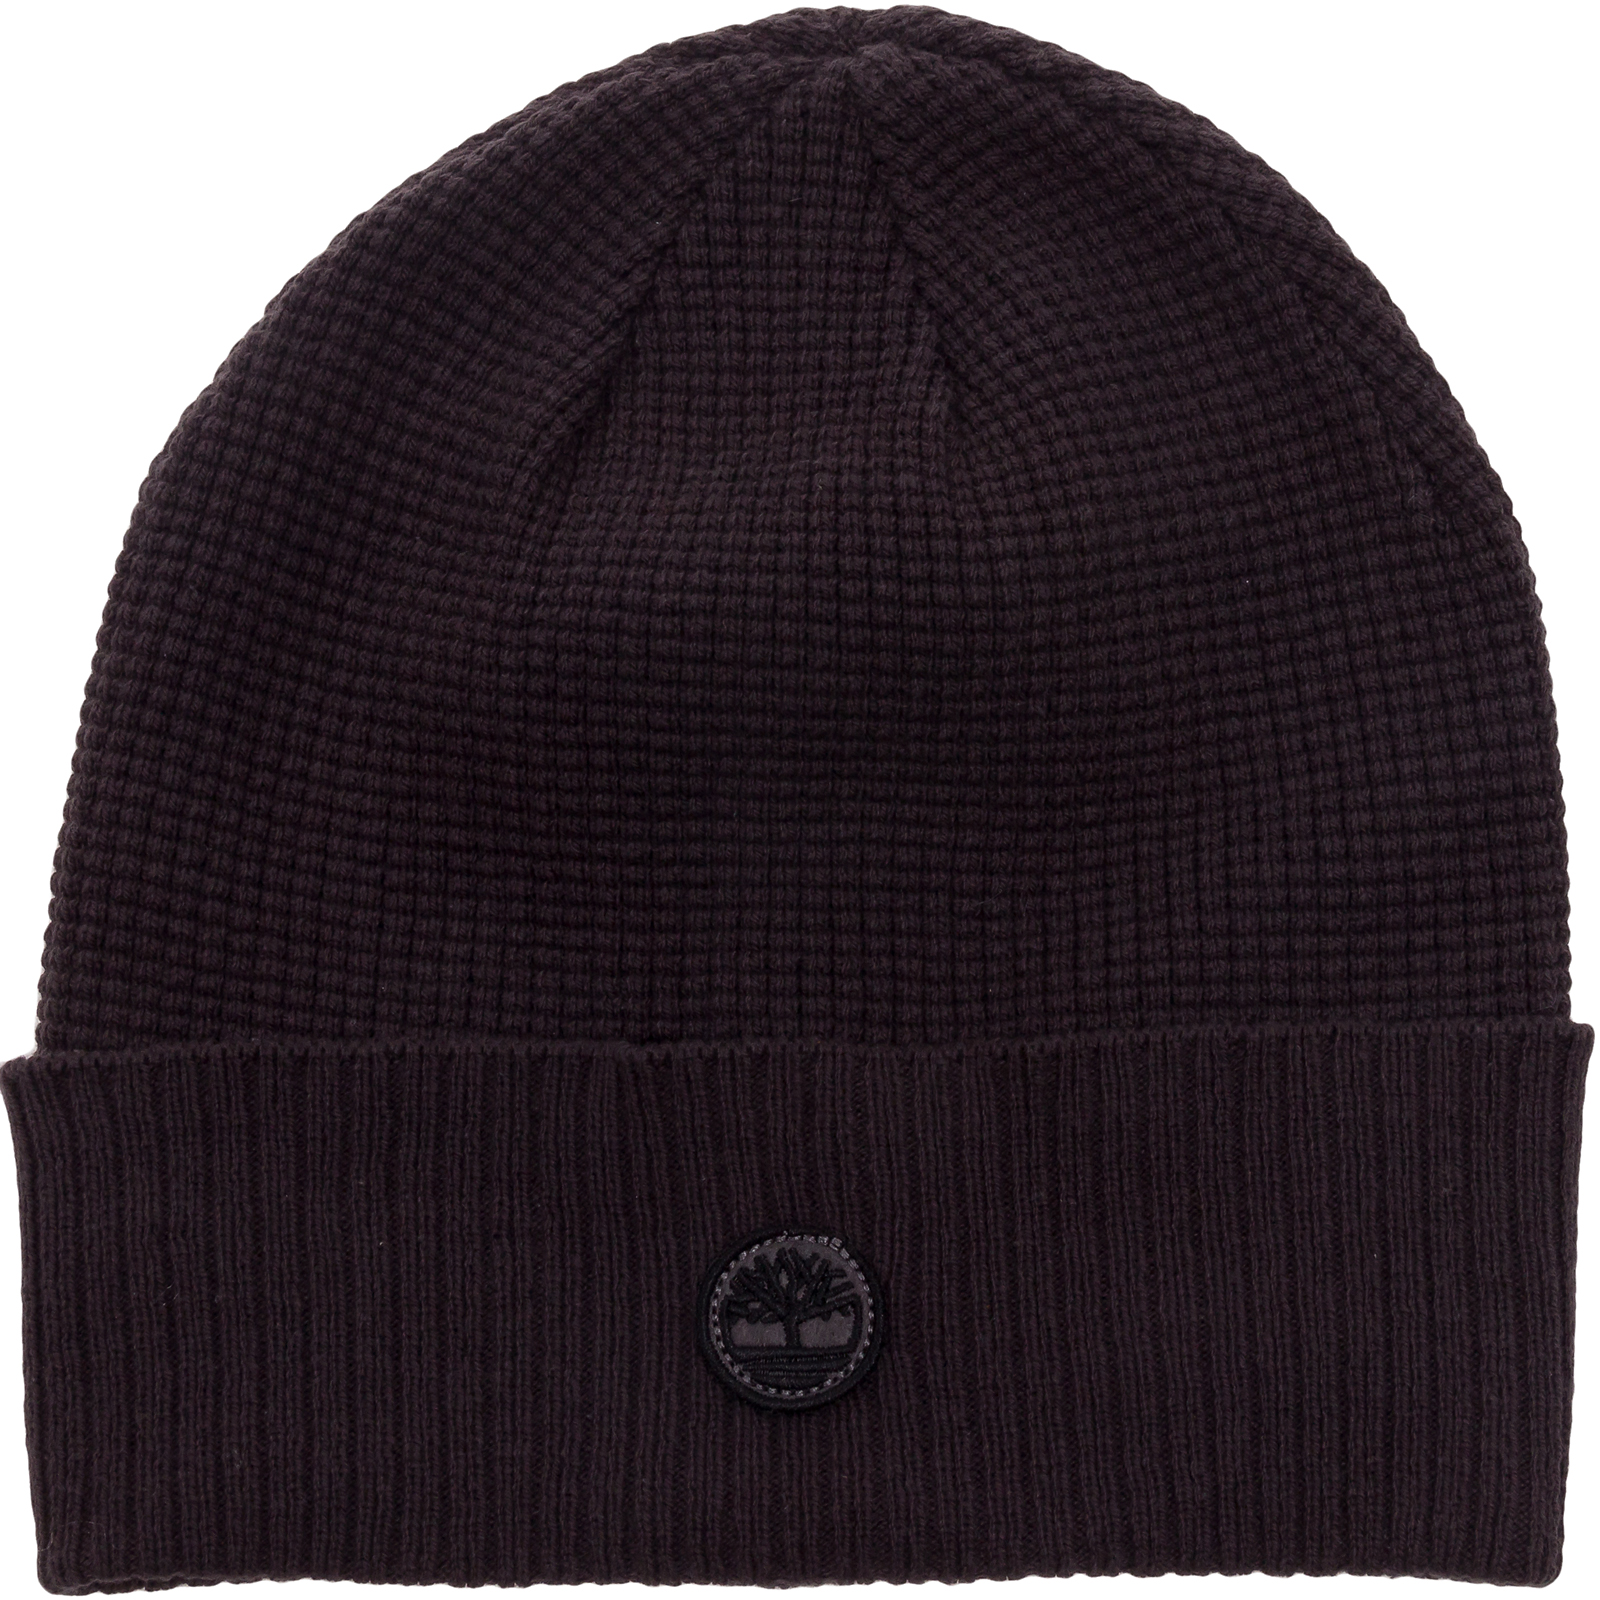 Custom Beanies Purchase blank and custom beanies wholesale just in time for winter. Beanies are made in popular fabrics including fleece, cotton, knitted and styles with Flexfit technology, slouchy, with or without poms and more.